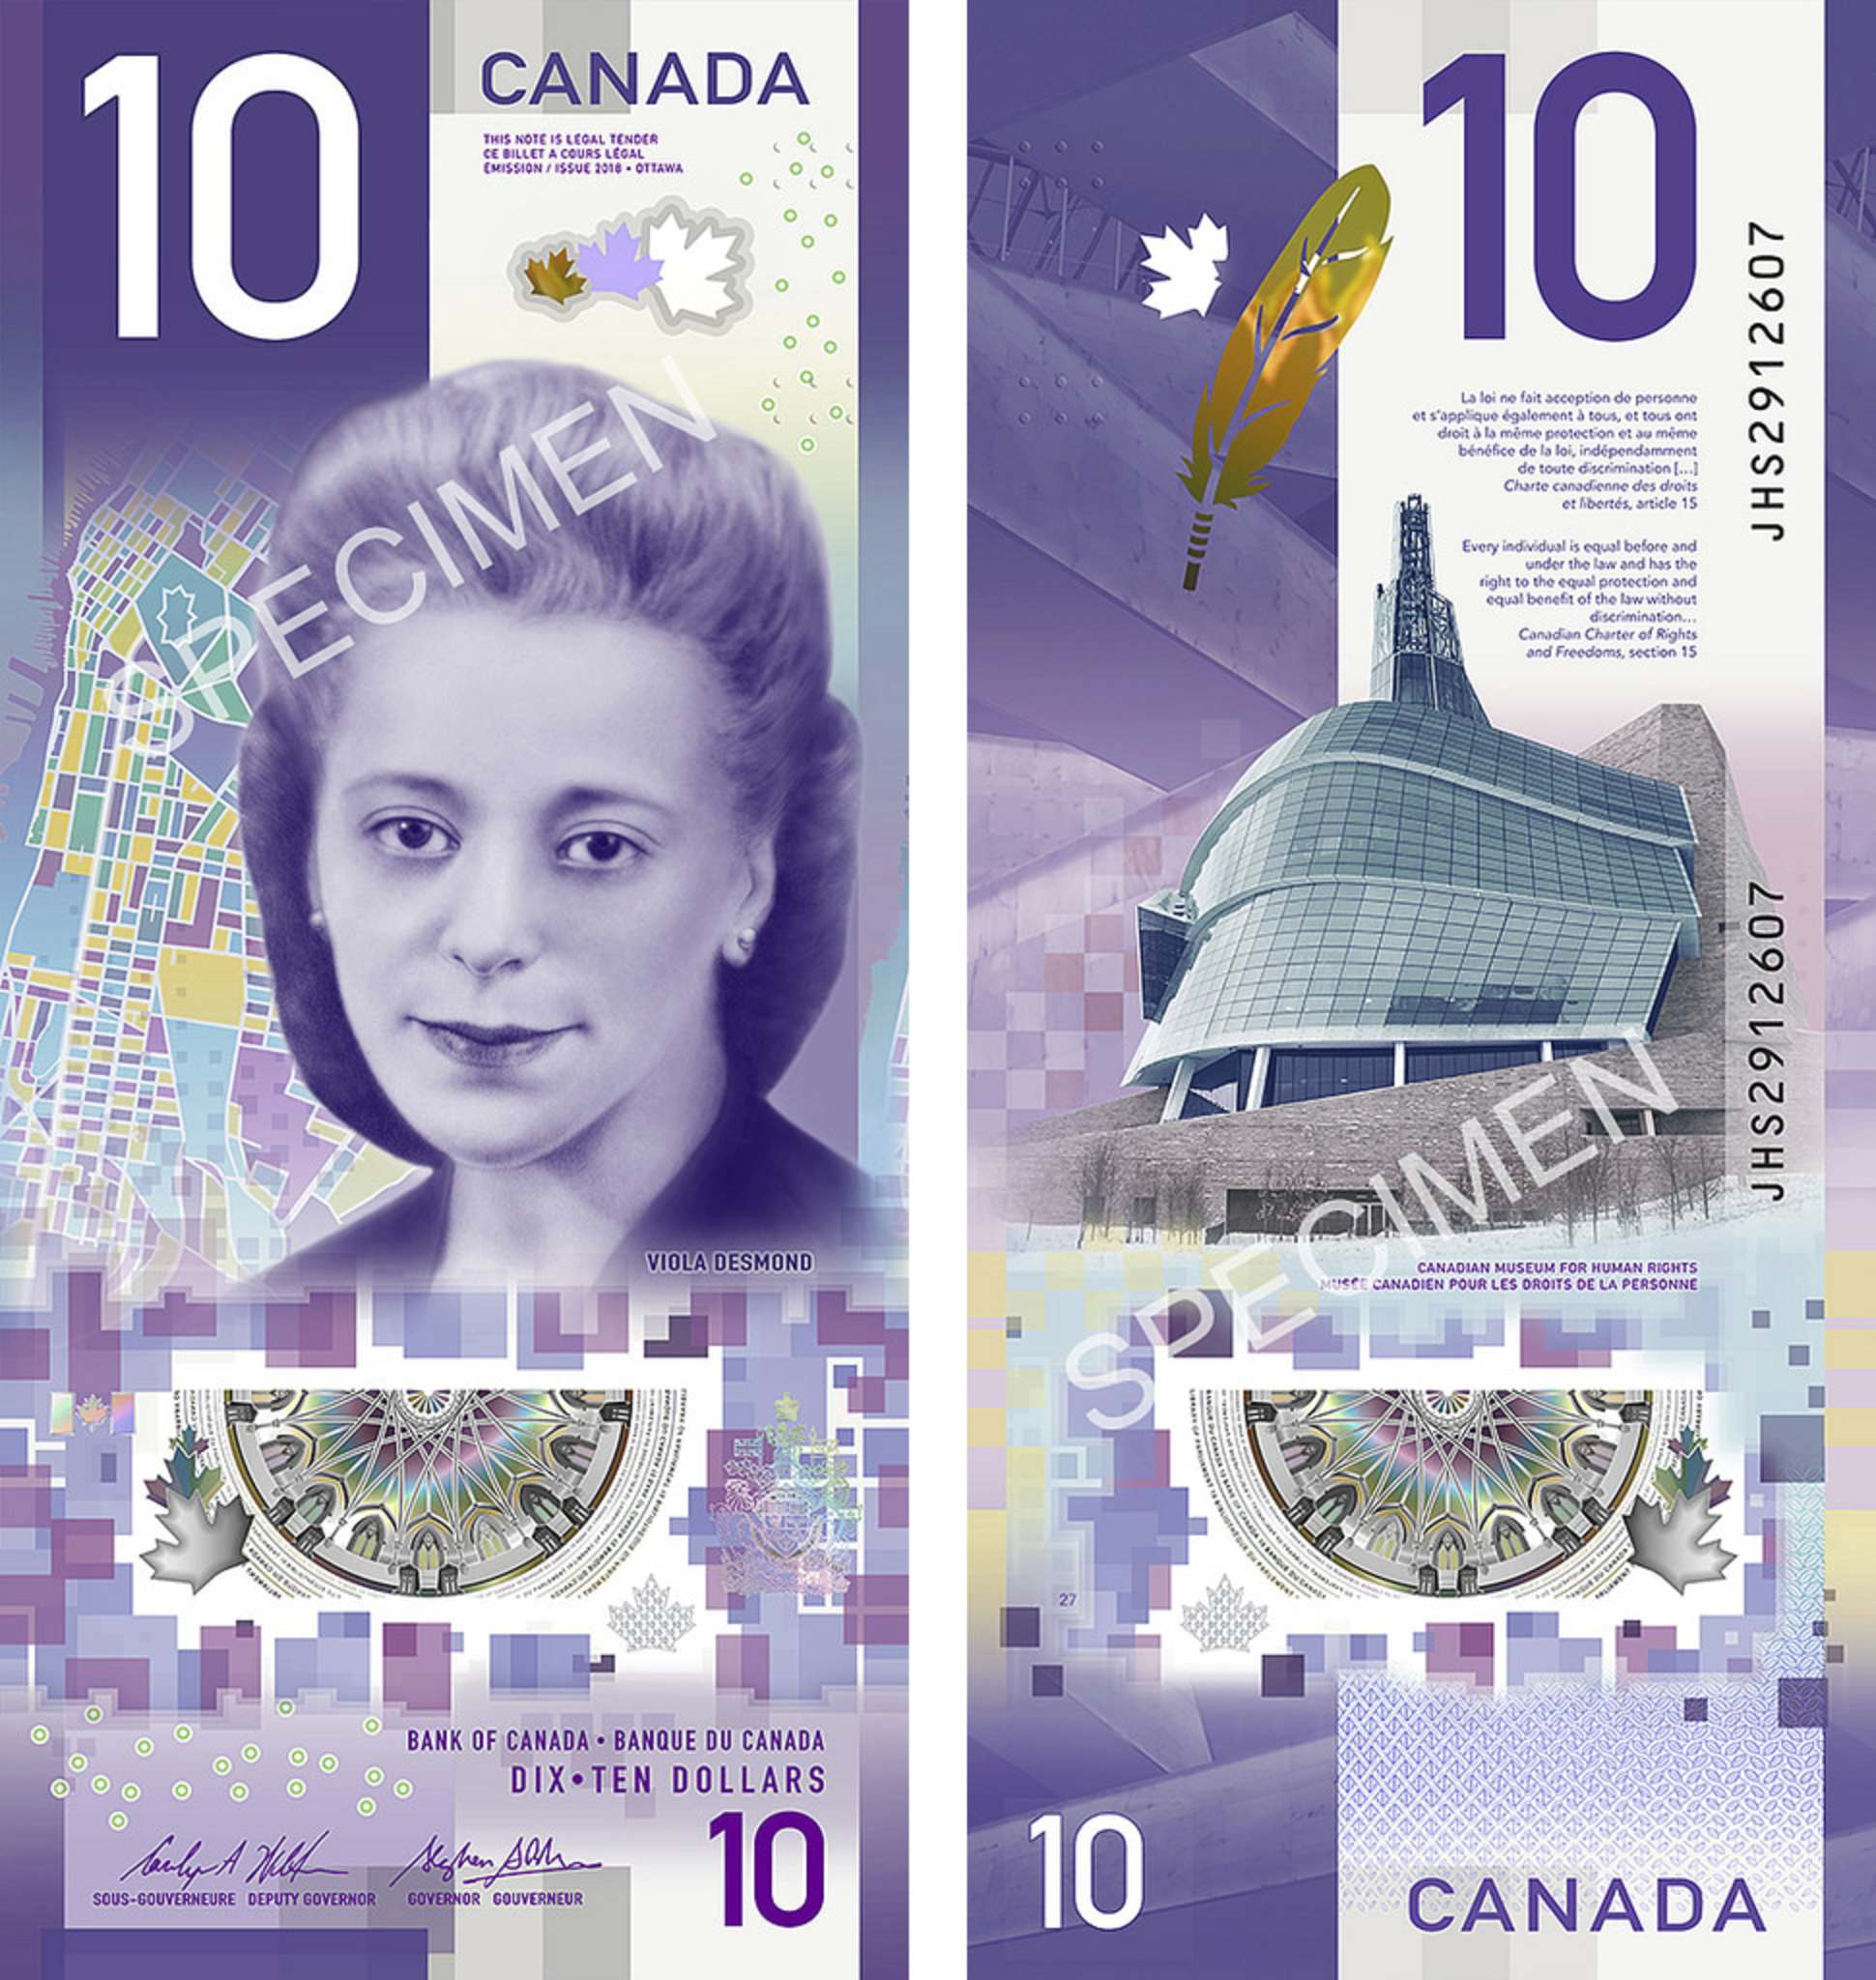 New $10 bill unveiled, featuring civil rights icon Viola Desmond